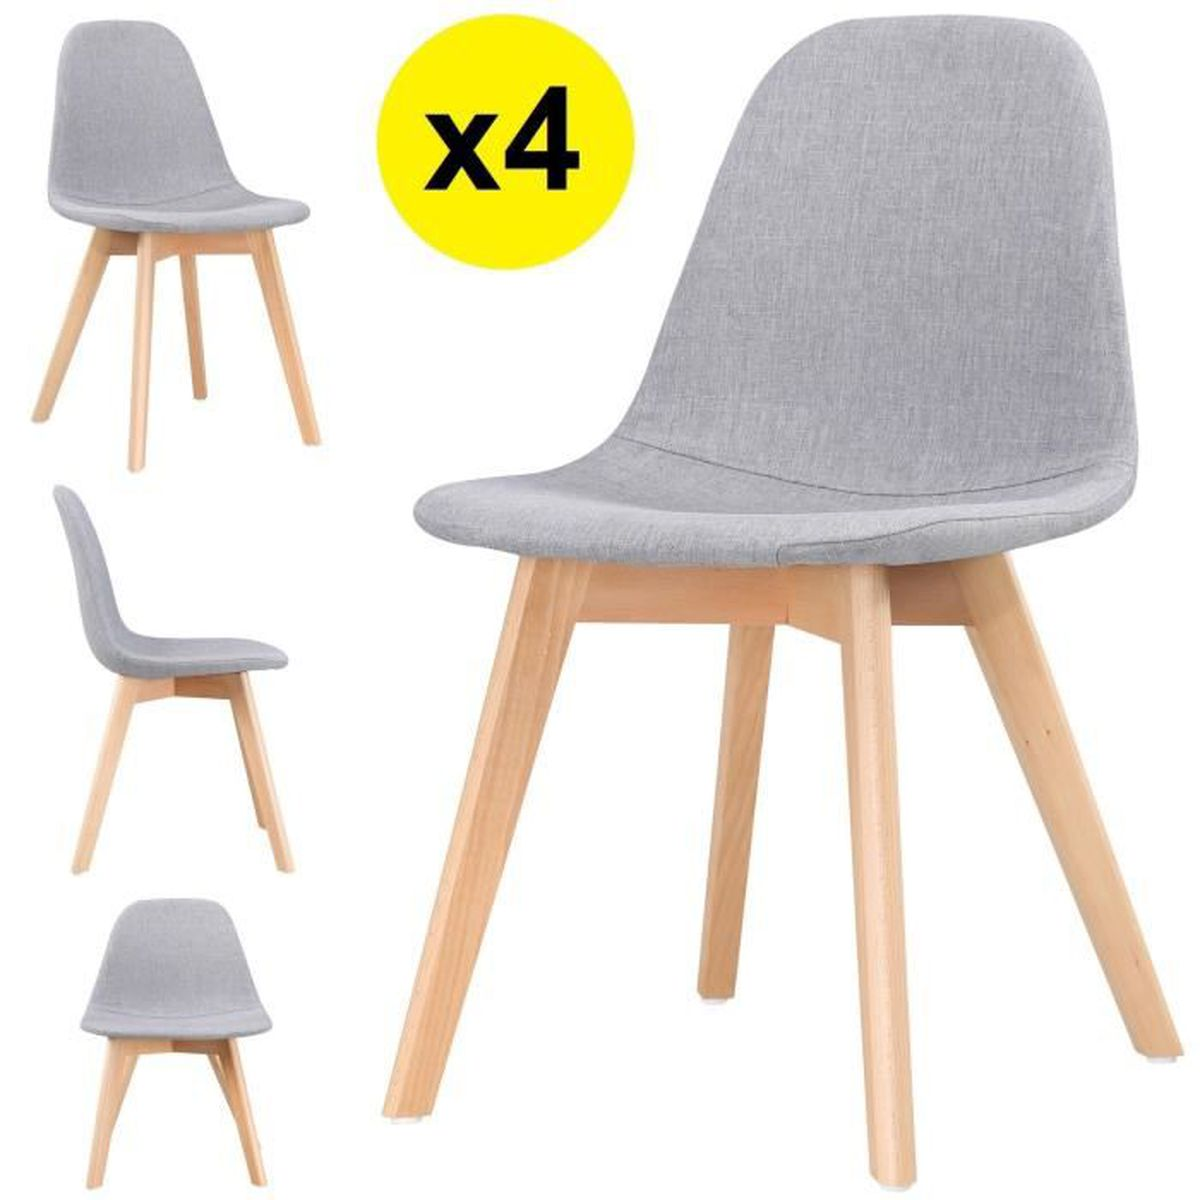 lot de 4 chaises scandinaves tissu gris clair skagen style scandinave la tendance ultime. Black Bedroom Furniture Sets. Home Design Ideas